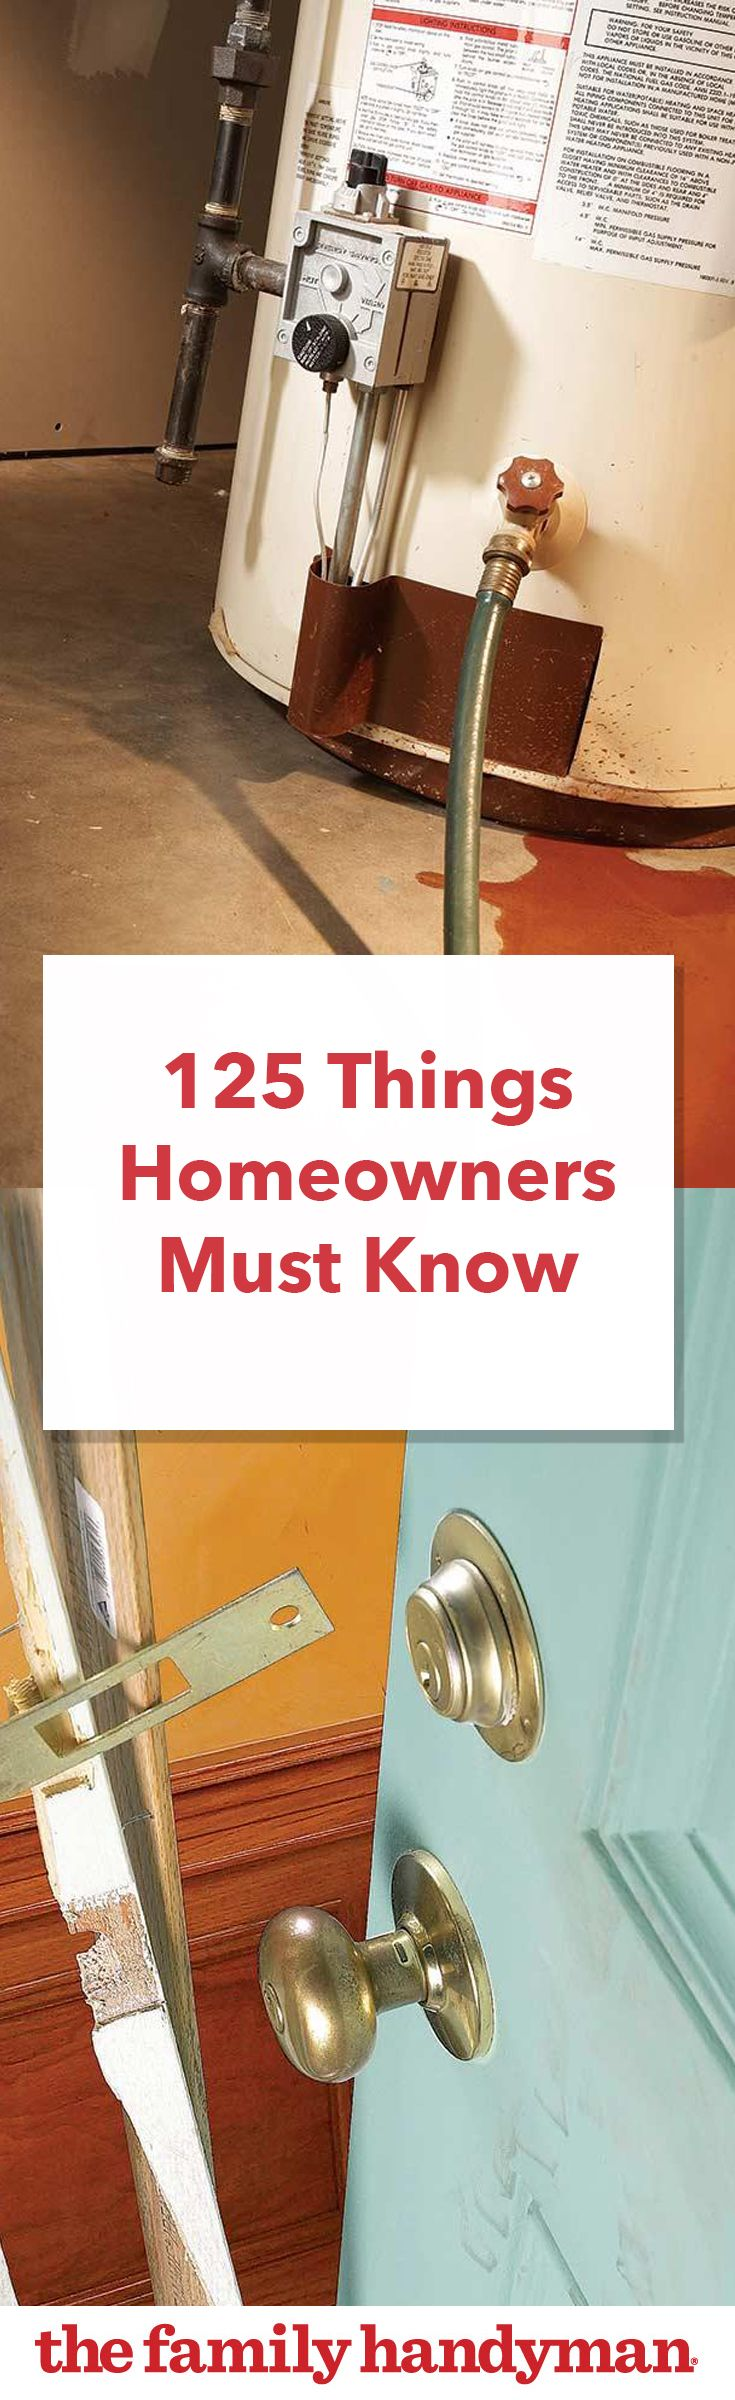 125 things homeowners need to know | diy ideas